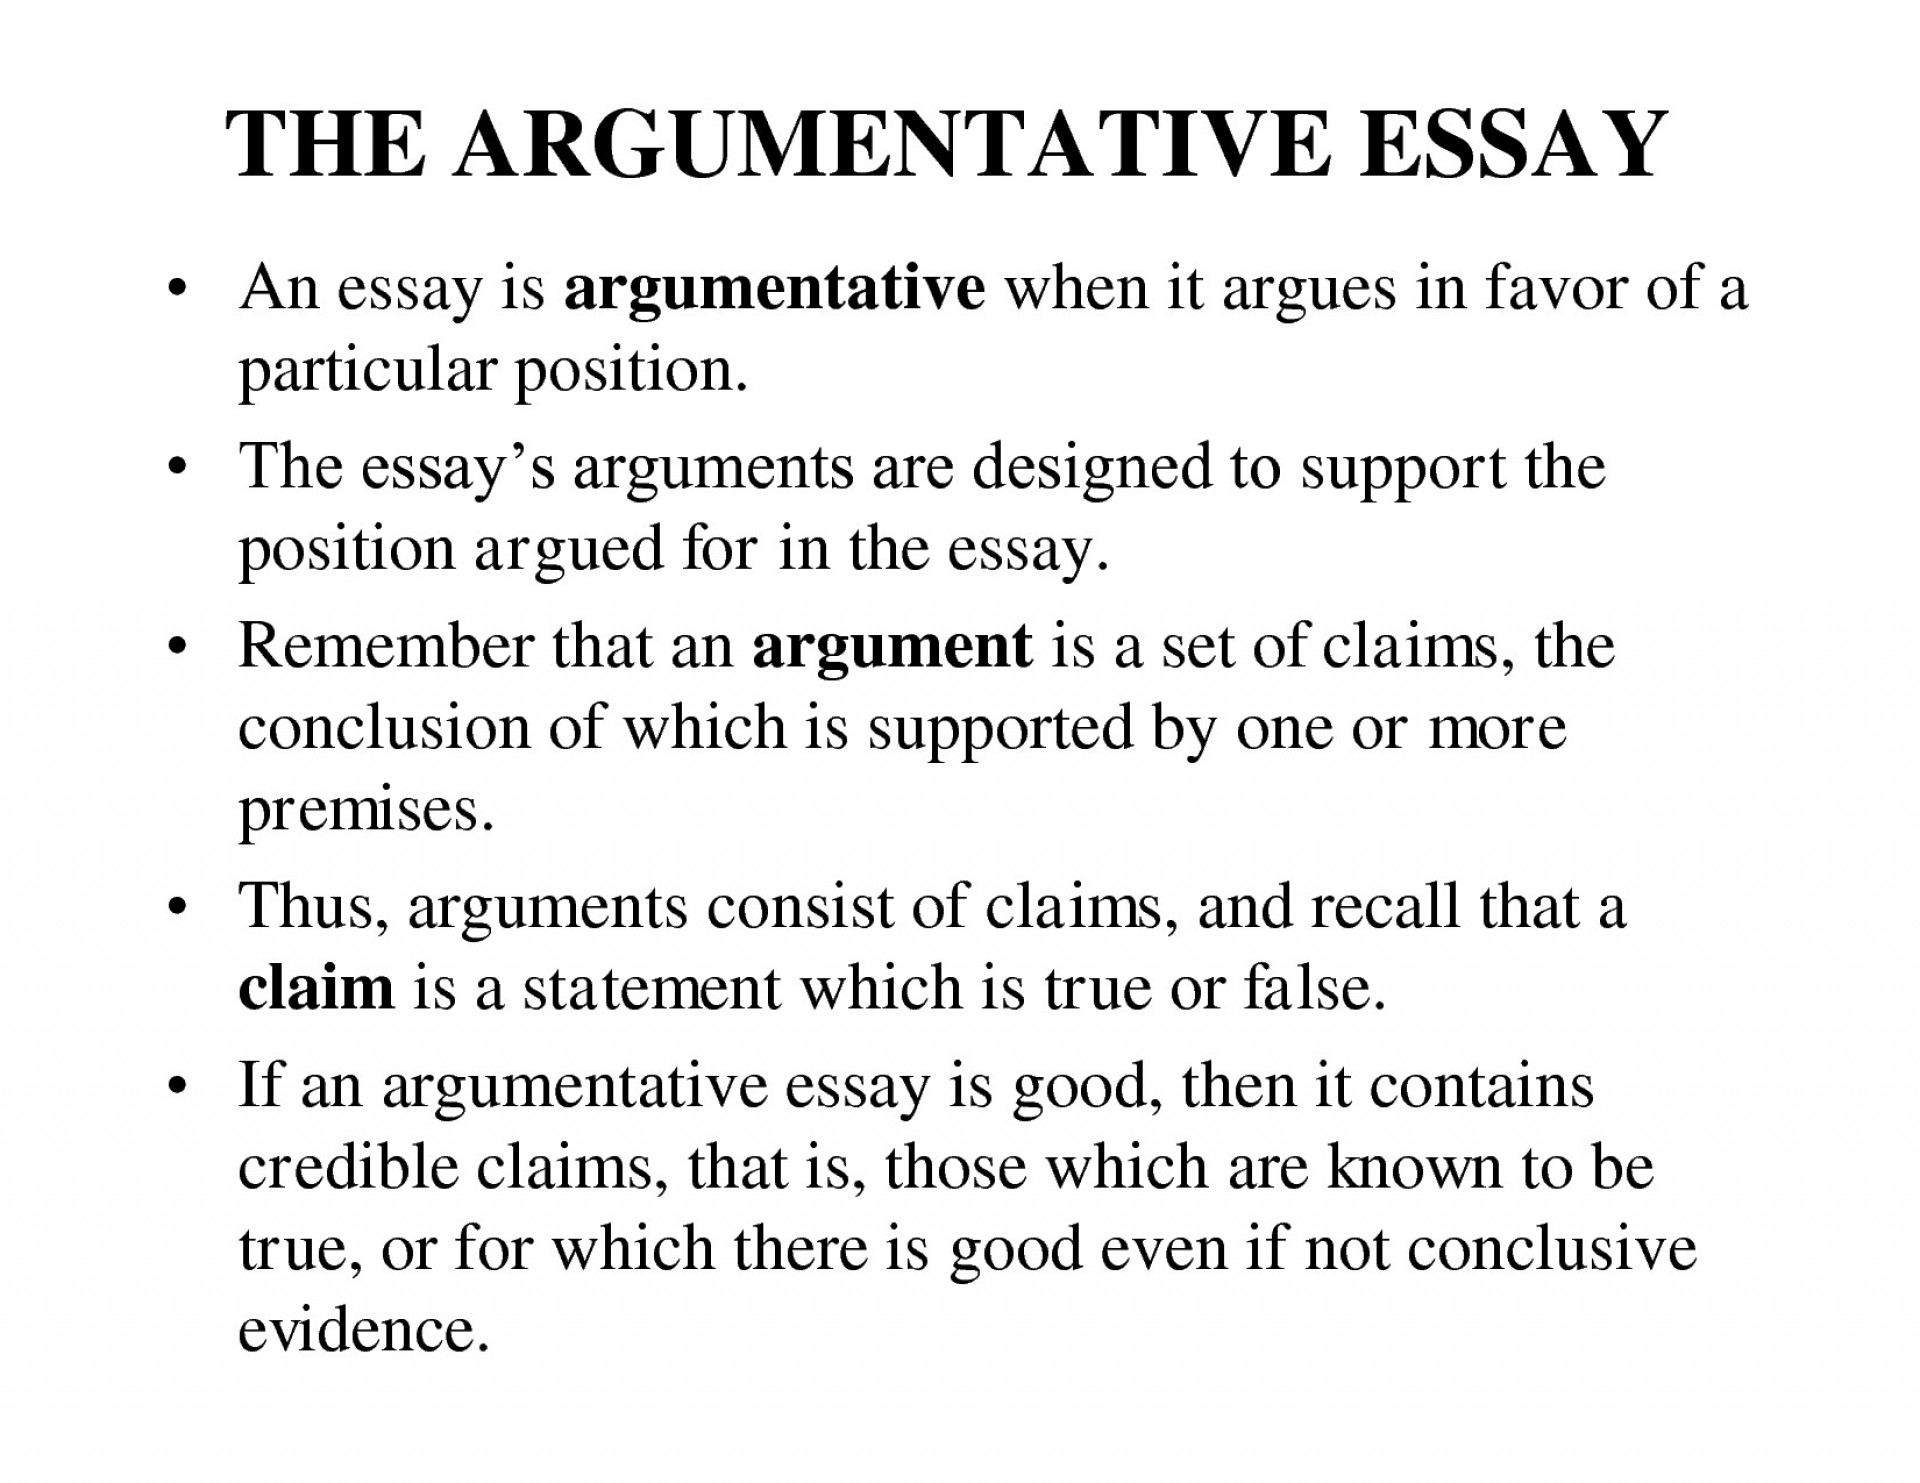 002 Ways To Write Conclusion For An Argumentative Essay How Conclude Top Teach Writing A Closing Paragraph Step By Ppt Middle School 1920